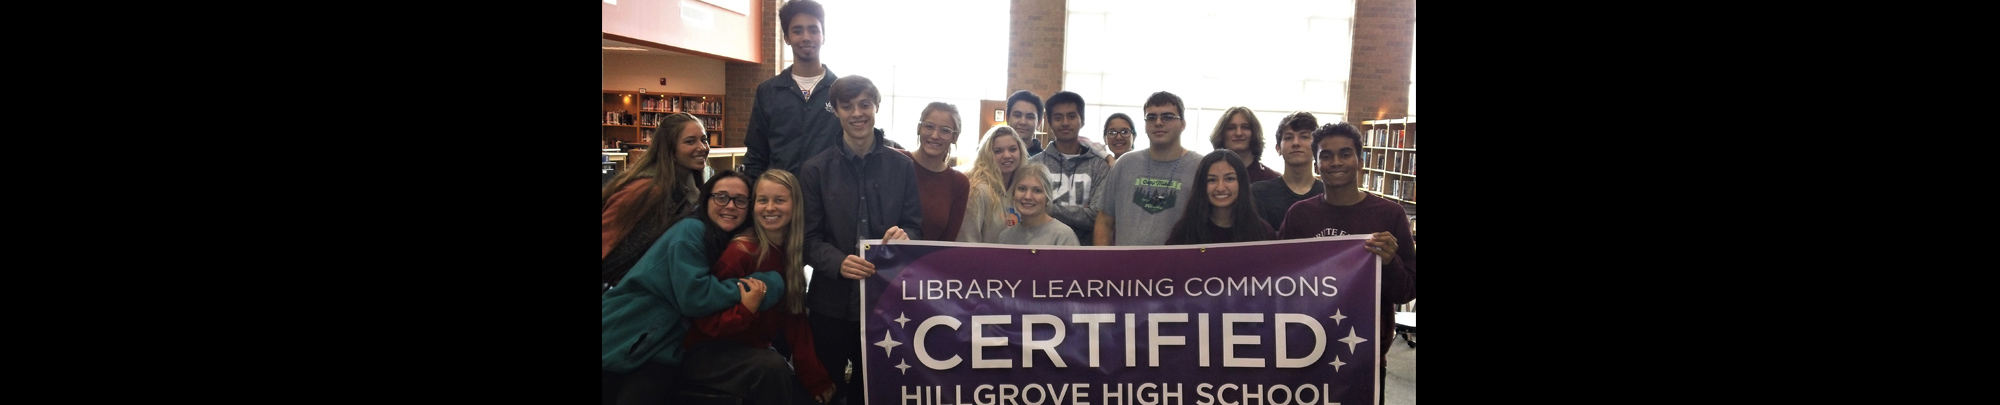 students with a banner that Library Learning Commons Hillgrove high School